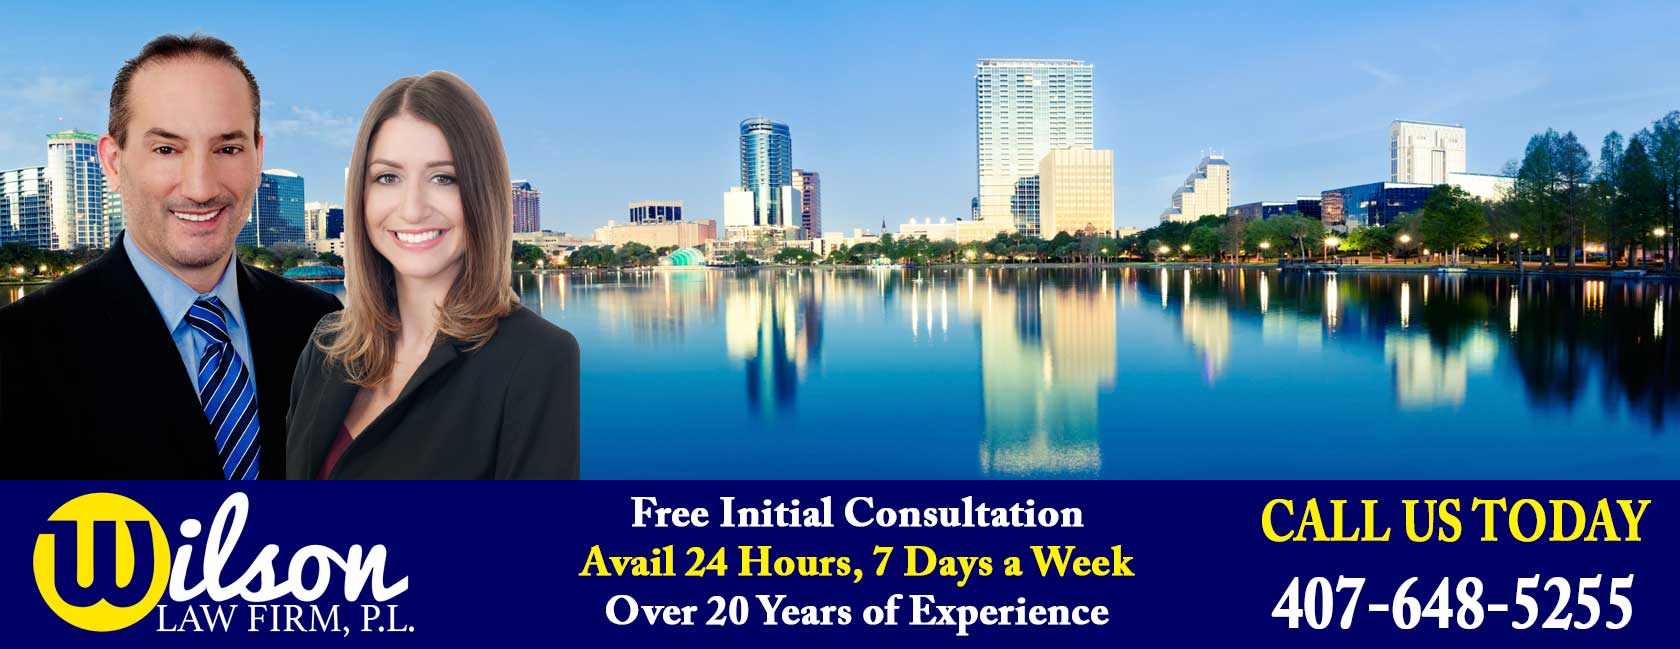 Wilson Law Firm Orlando Divorce Attorneys Orlando